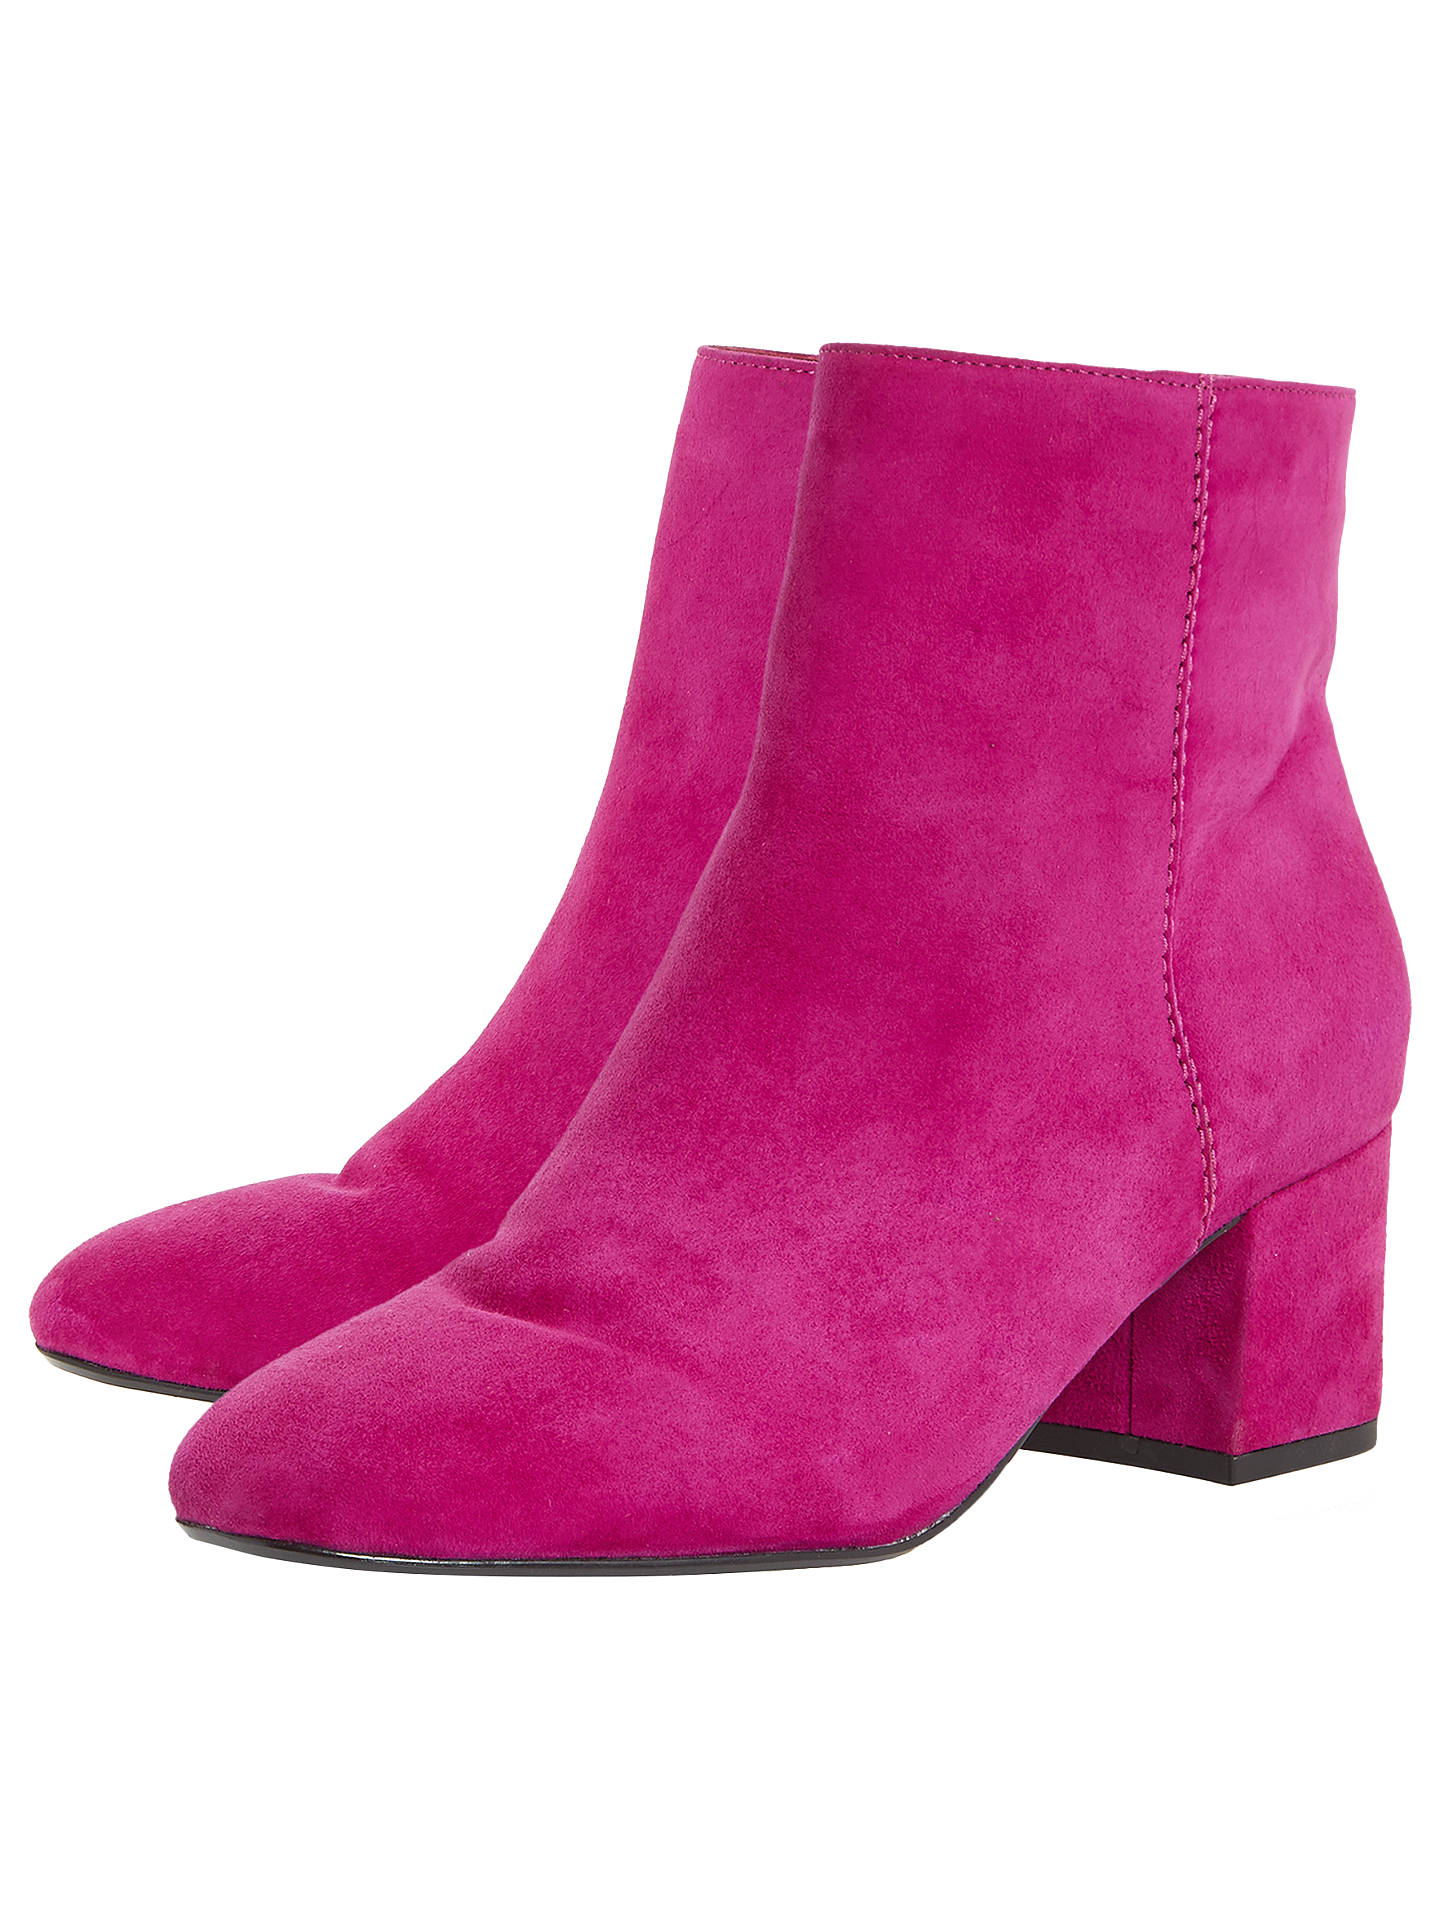 8e63a343136 Dune Olyvea Block Heeled Ankle Boots, Pink Suede at John Lewis ...